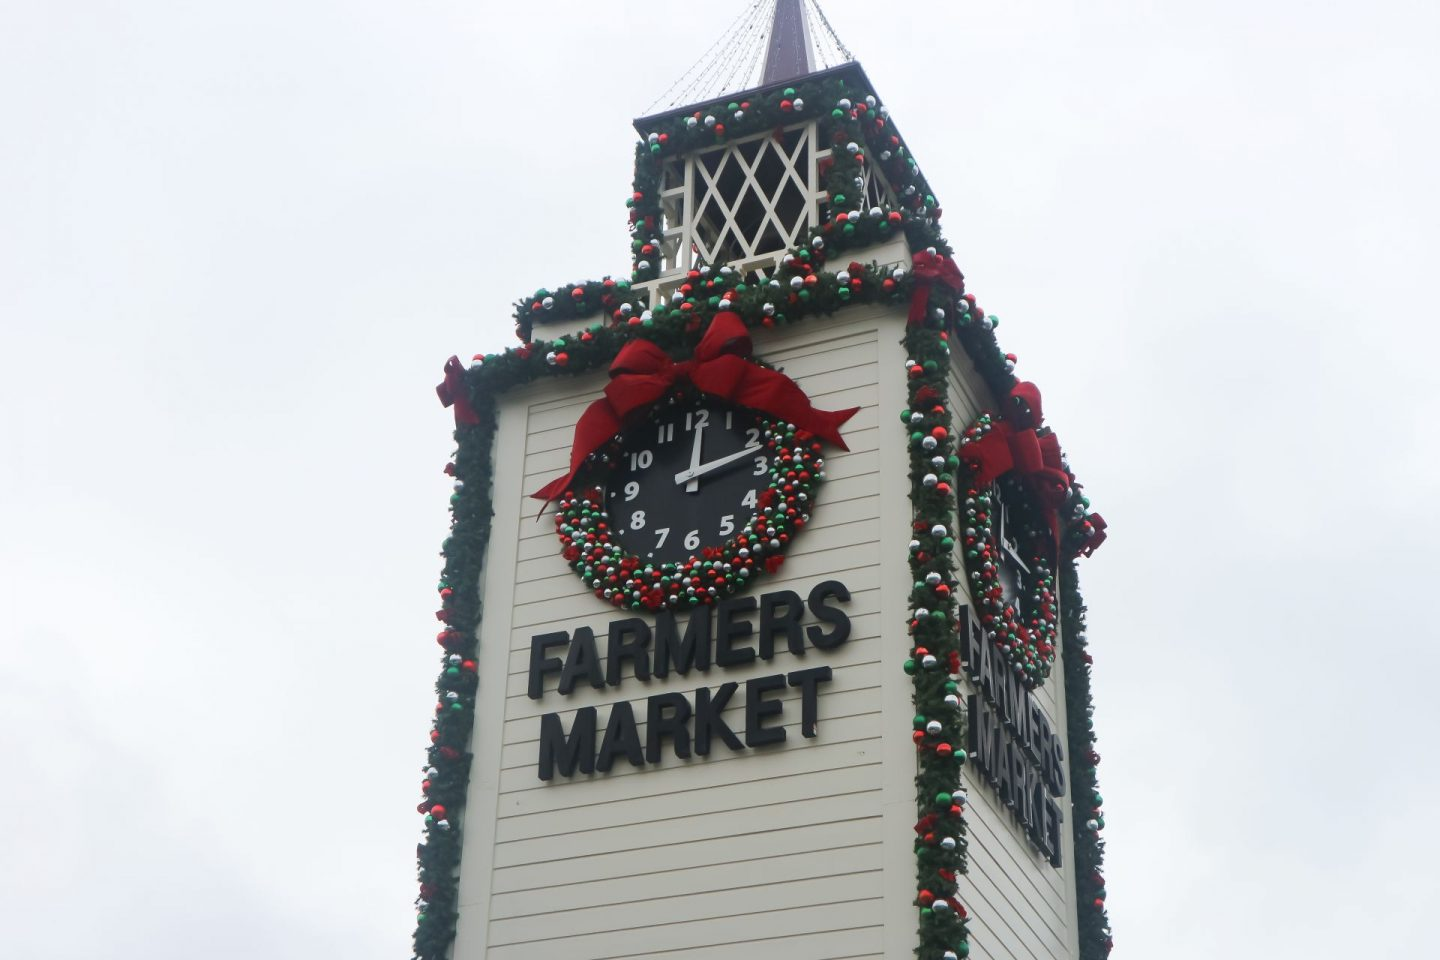 los angeles original farmers market holiday decorations